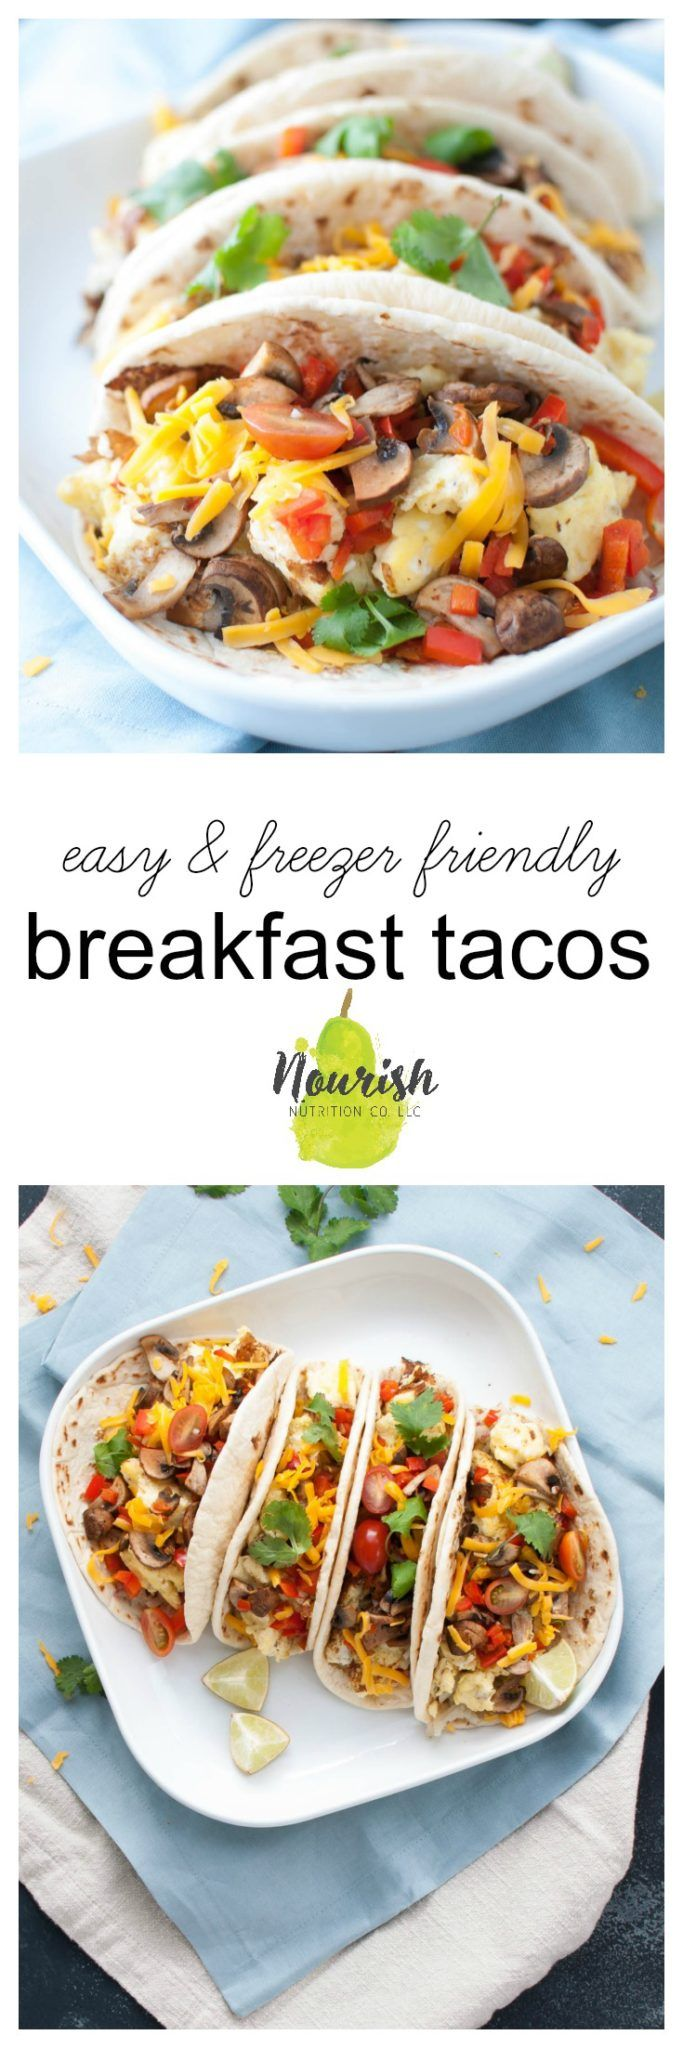 The Easiest Breakfast Tacos Recipe | eggs, vegetables, and potatoes rolled up to be frozen for easy weekday breakfasts or enjoyed on a relaxing morning, pop them into the freezer for your go-to breakfast burrito | www.nourishnutritionblog.com via @nourishnutrico